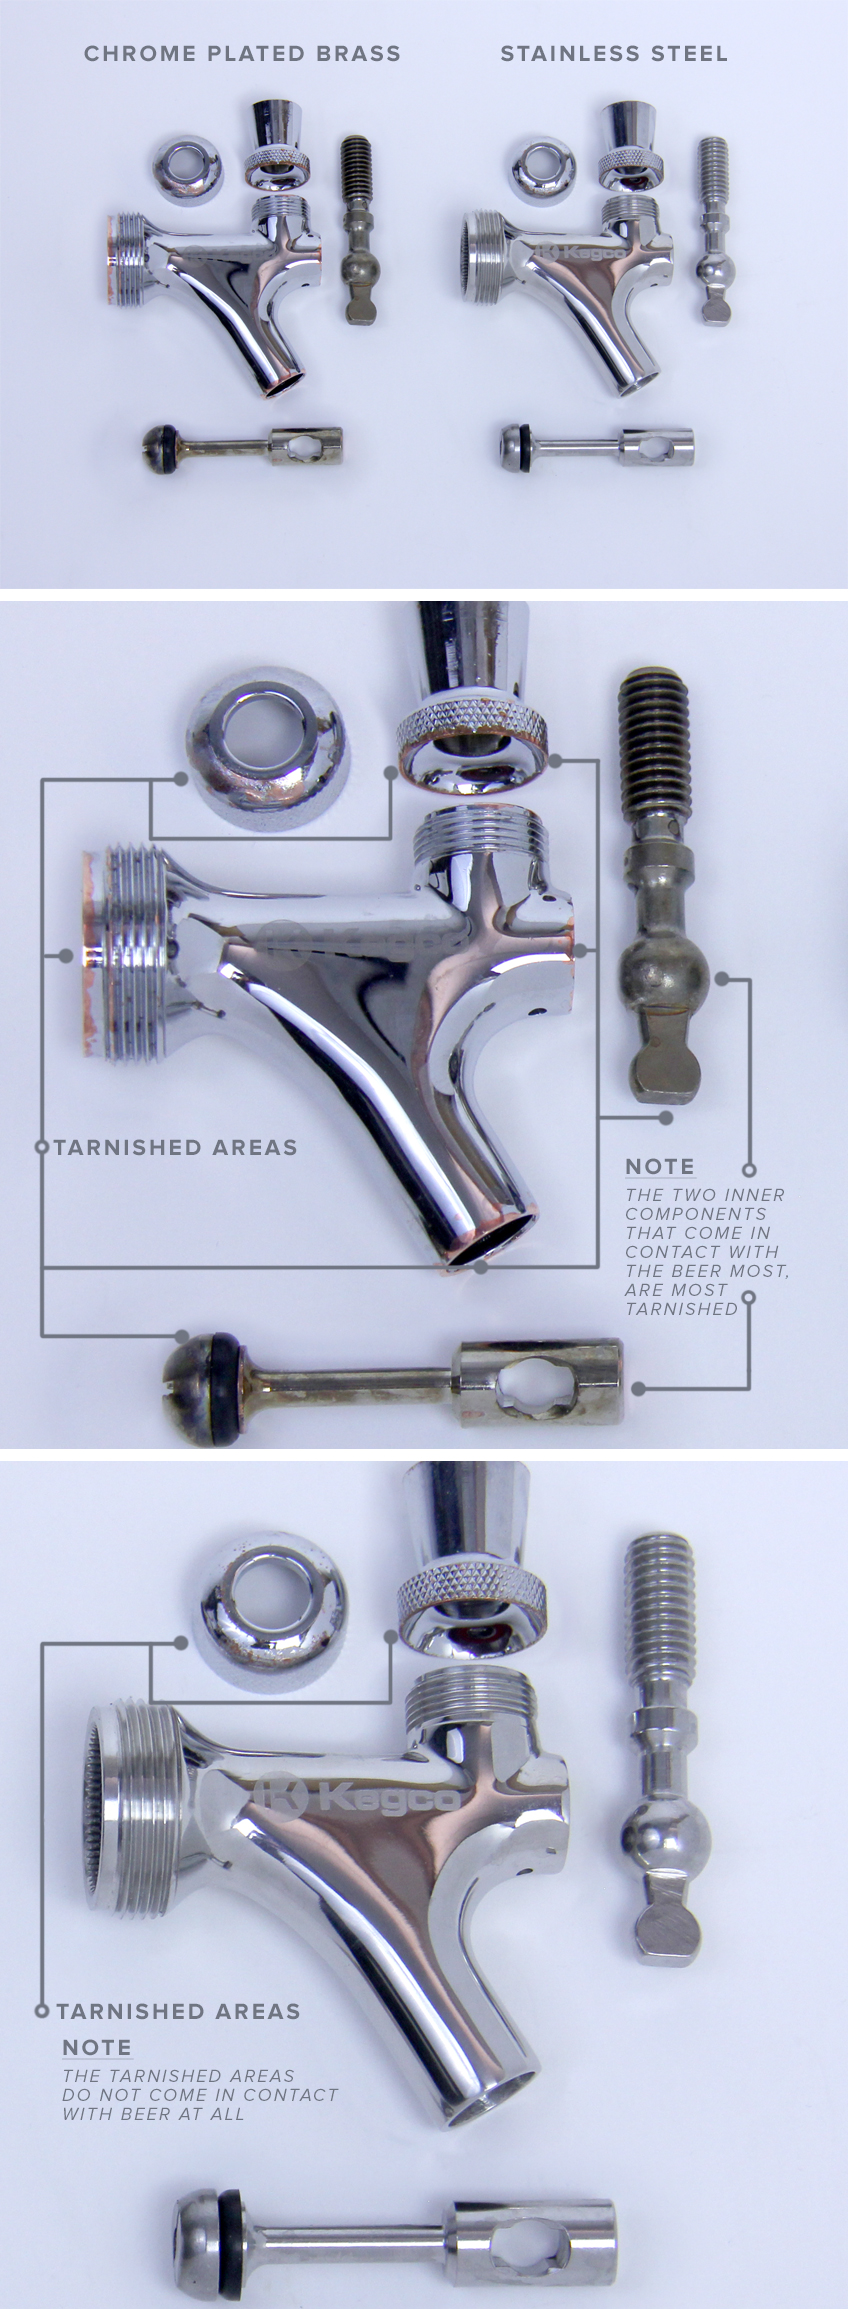 Beer Faucets | BeverageFactory.com